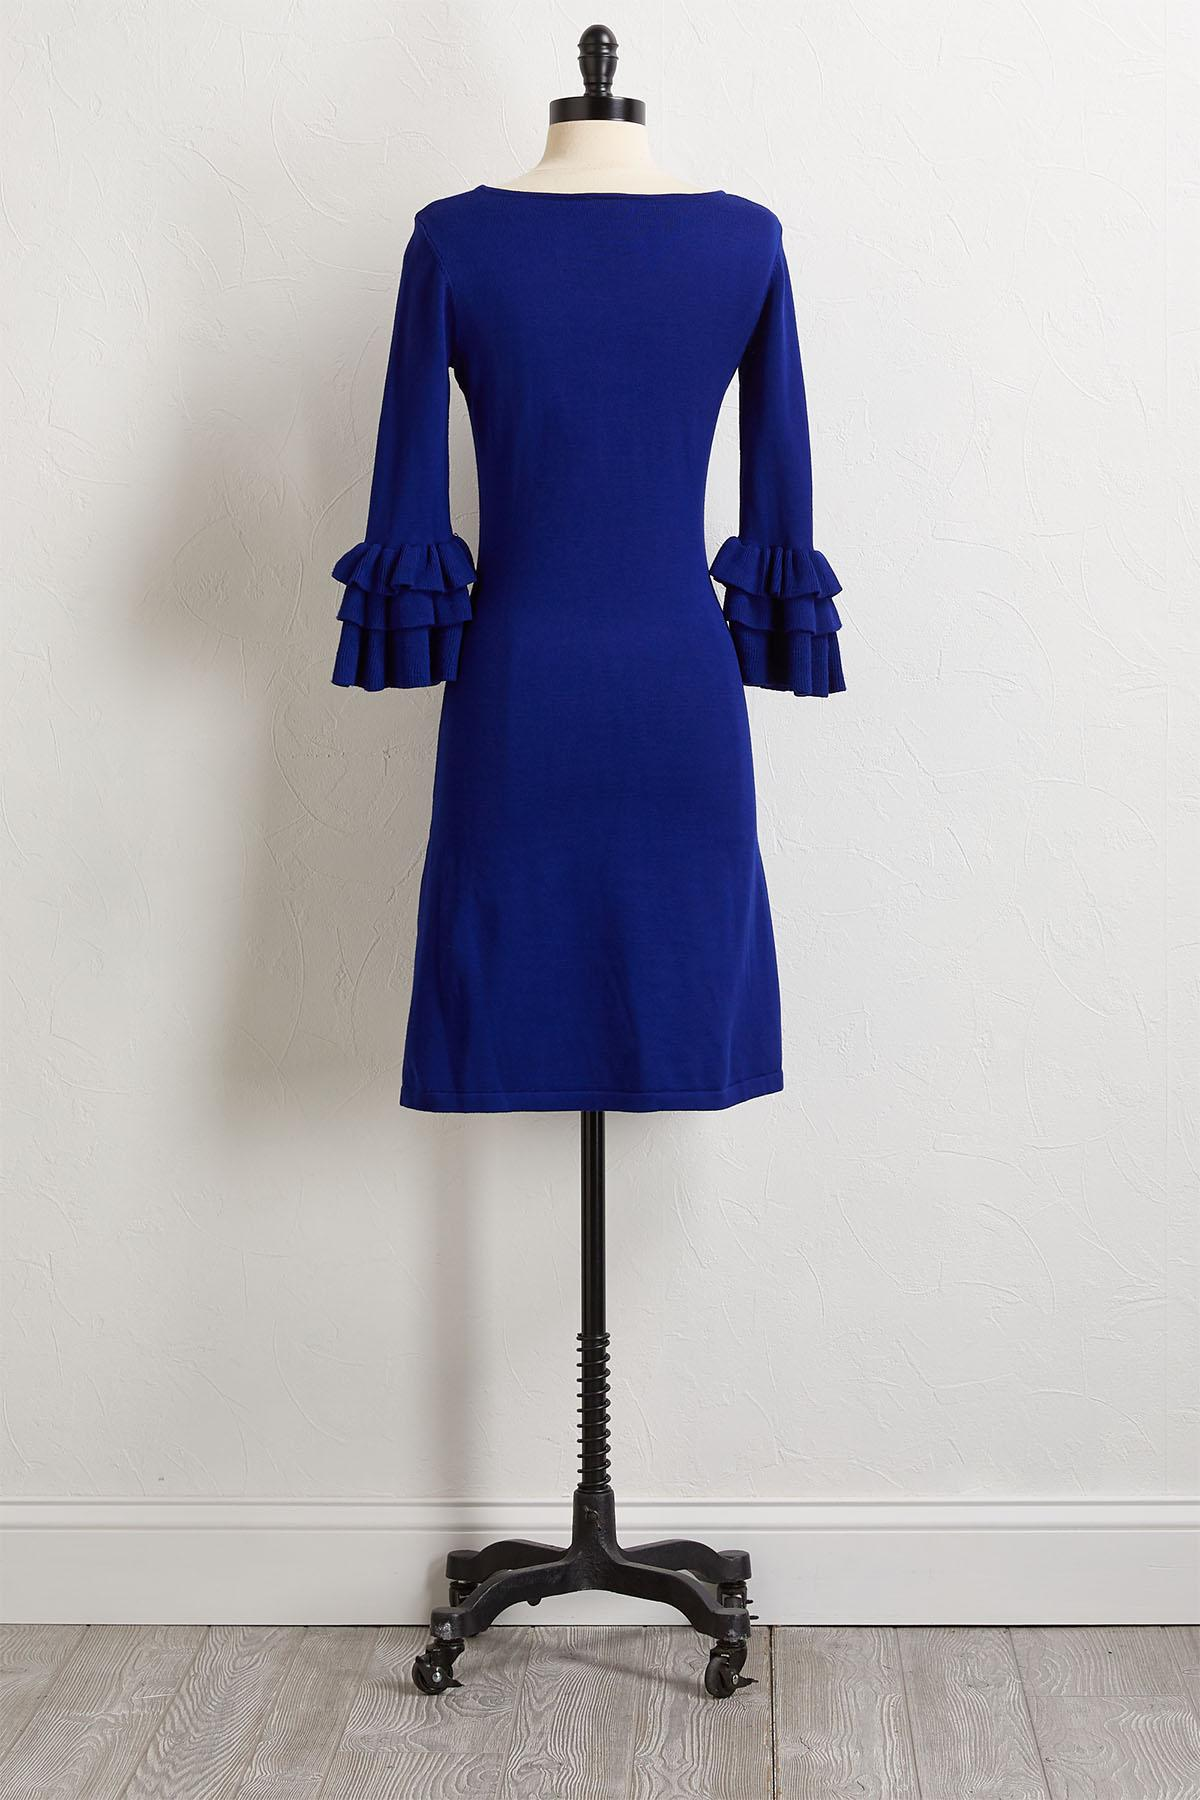 Blue Ruffled Sweater Dress